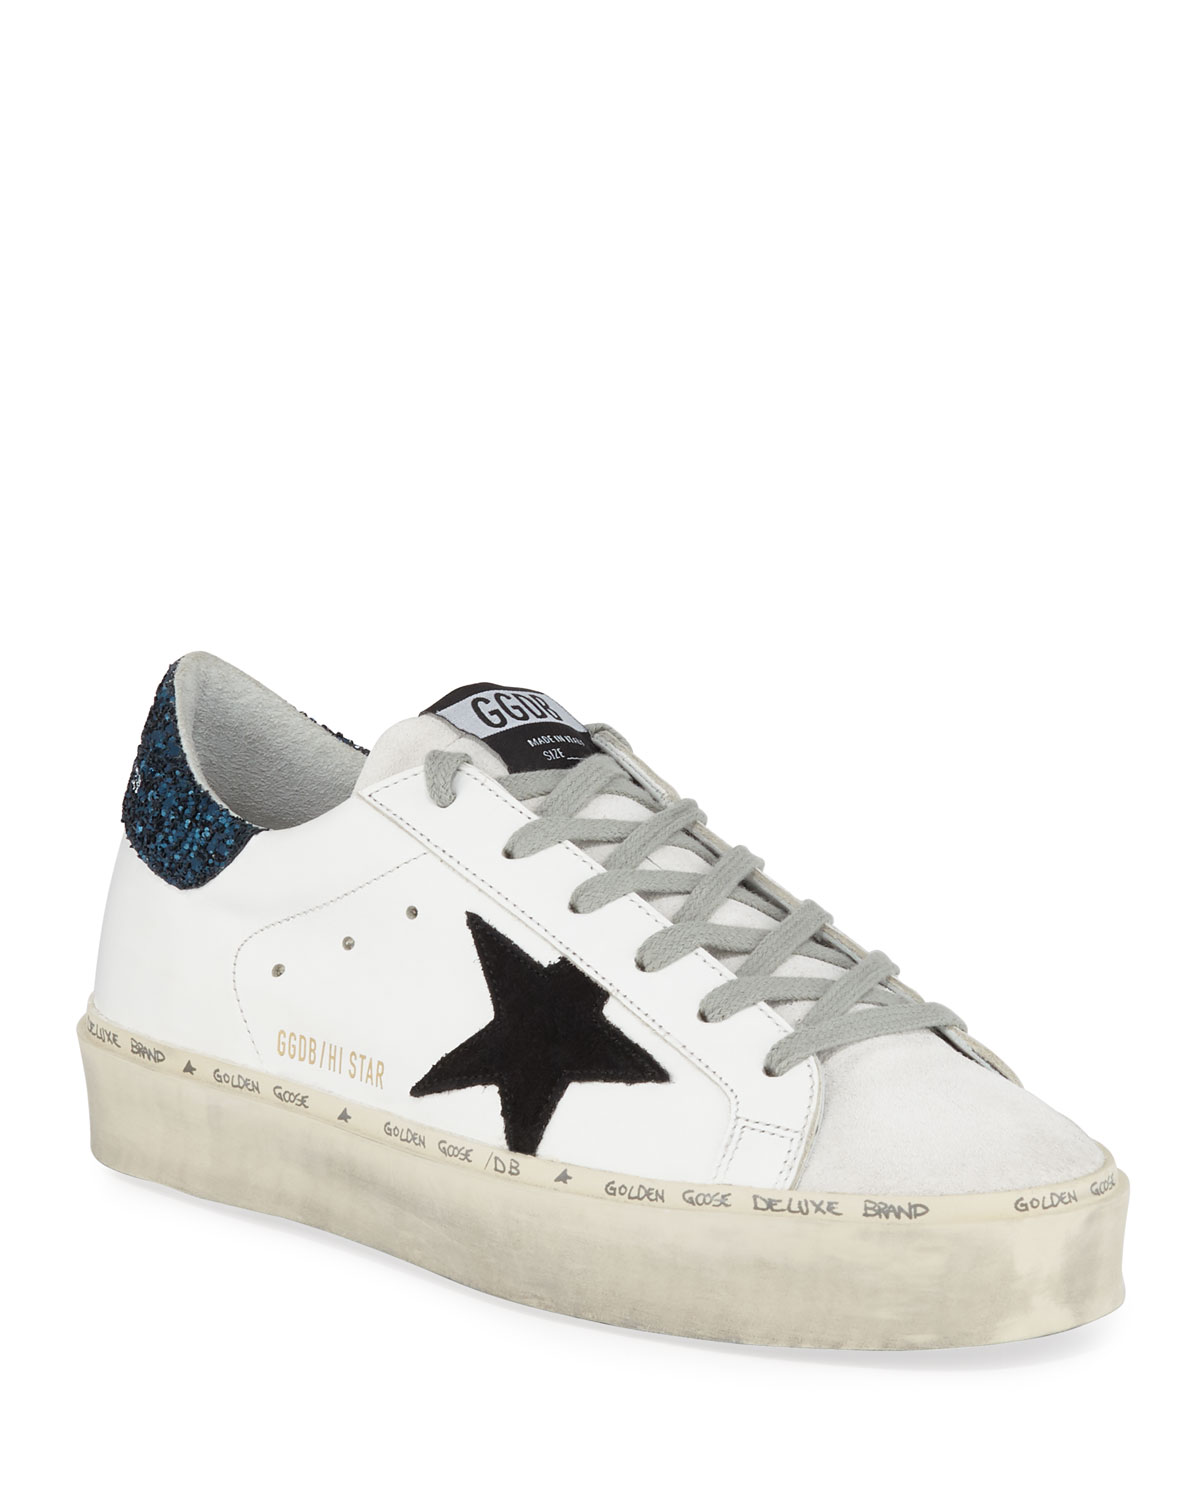 cb9650dca68e6 Golden Goose Hi Star Leather Sneakers with Glitter Back | Neiman Marcus